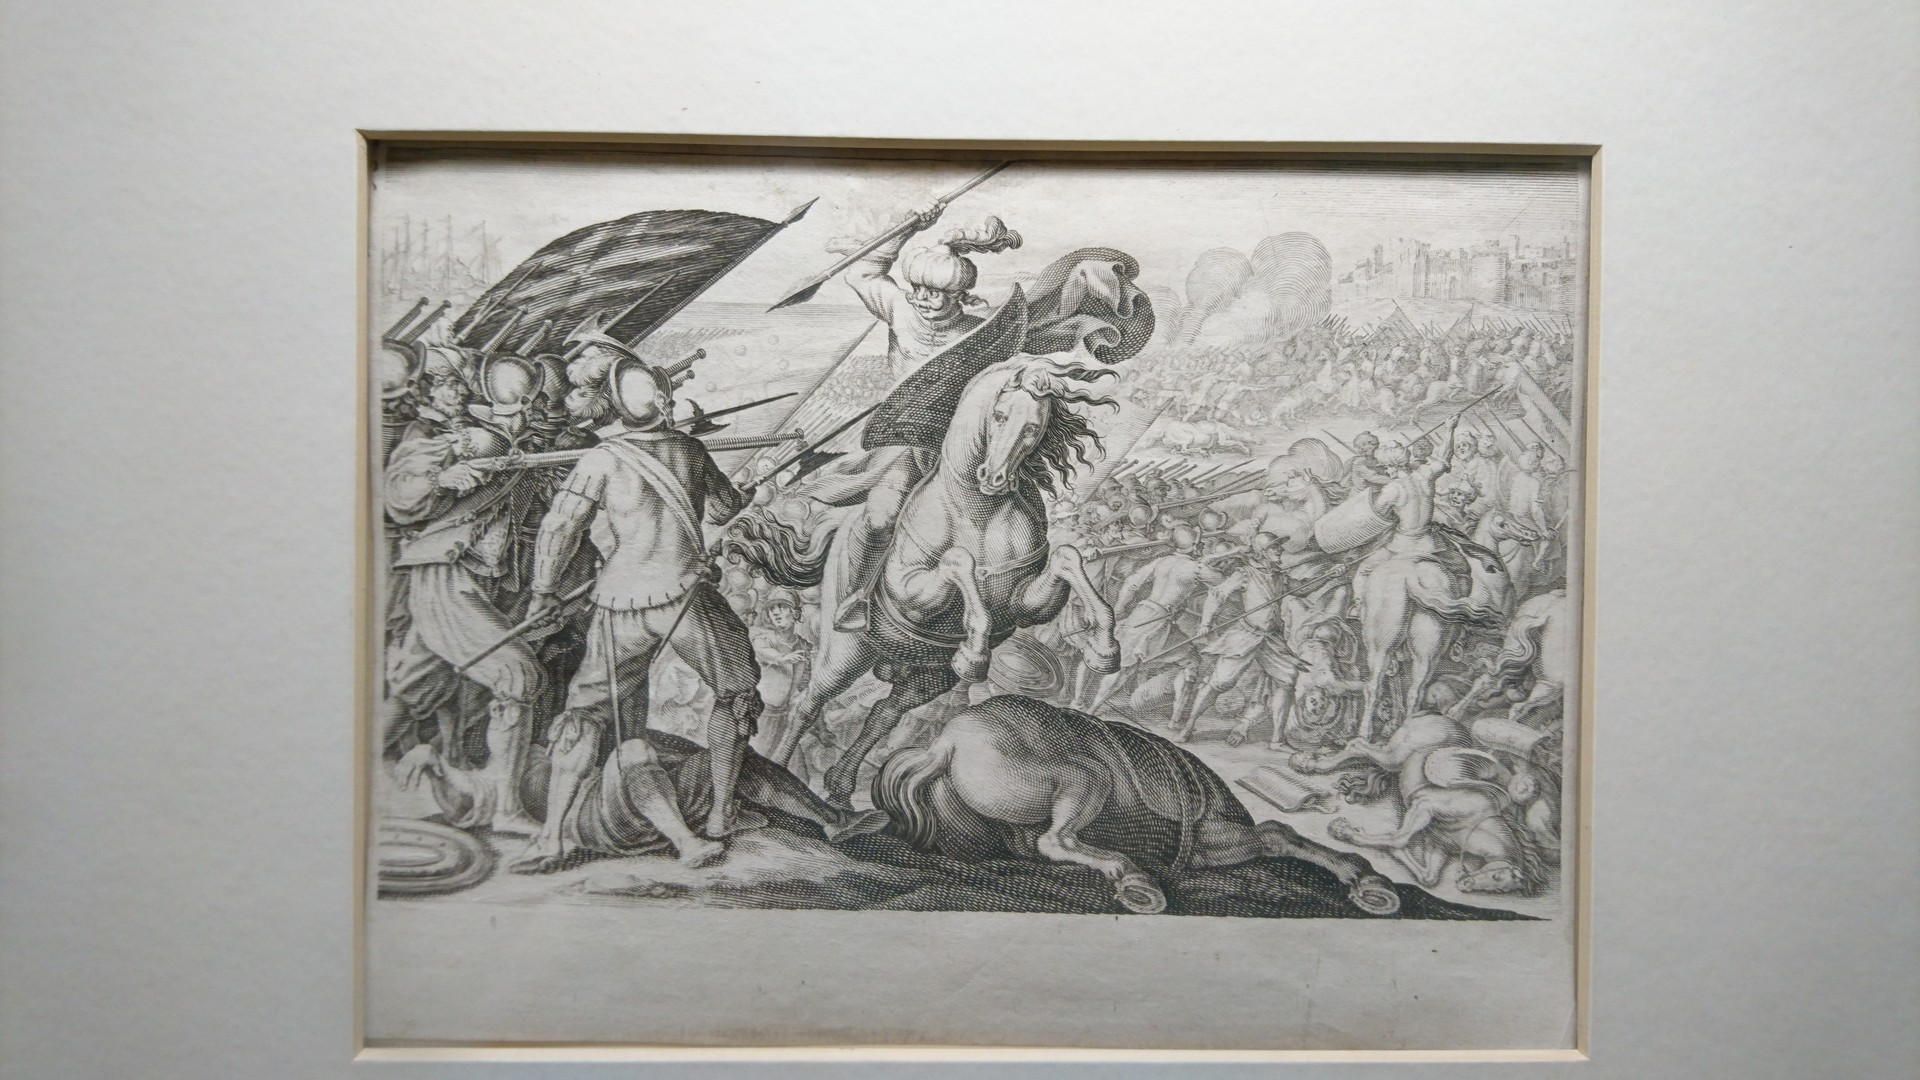 museo-di-palazzo-reale-d4c252bf9afe7b88a